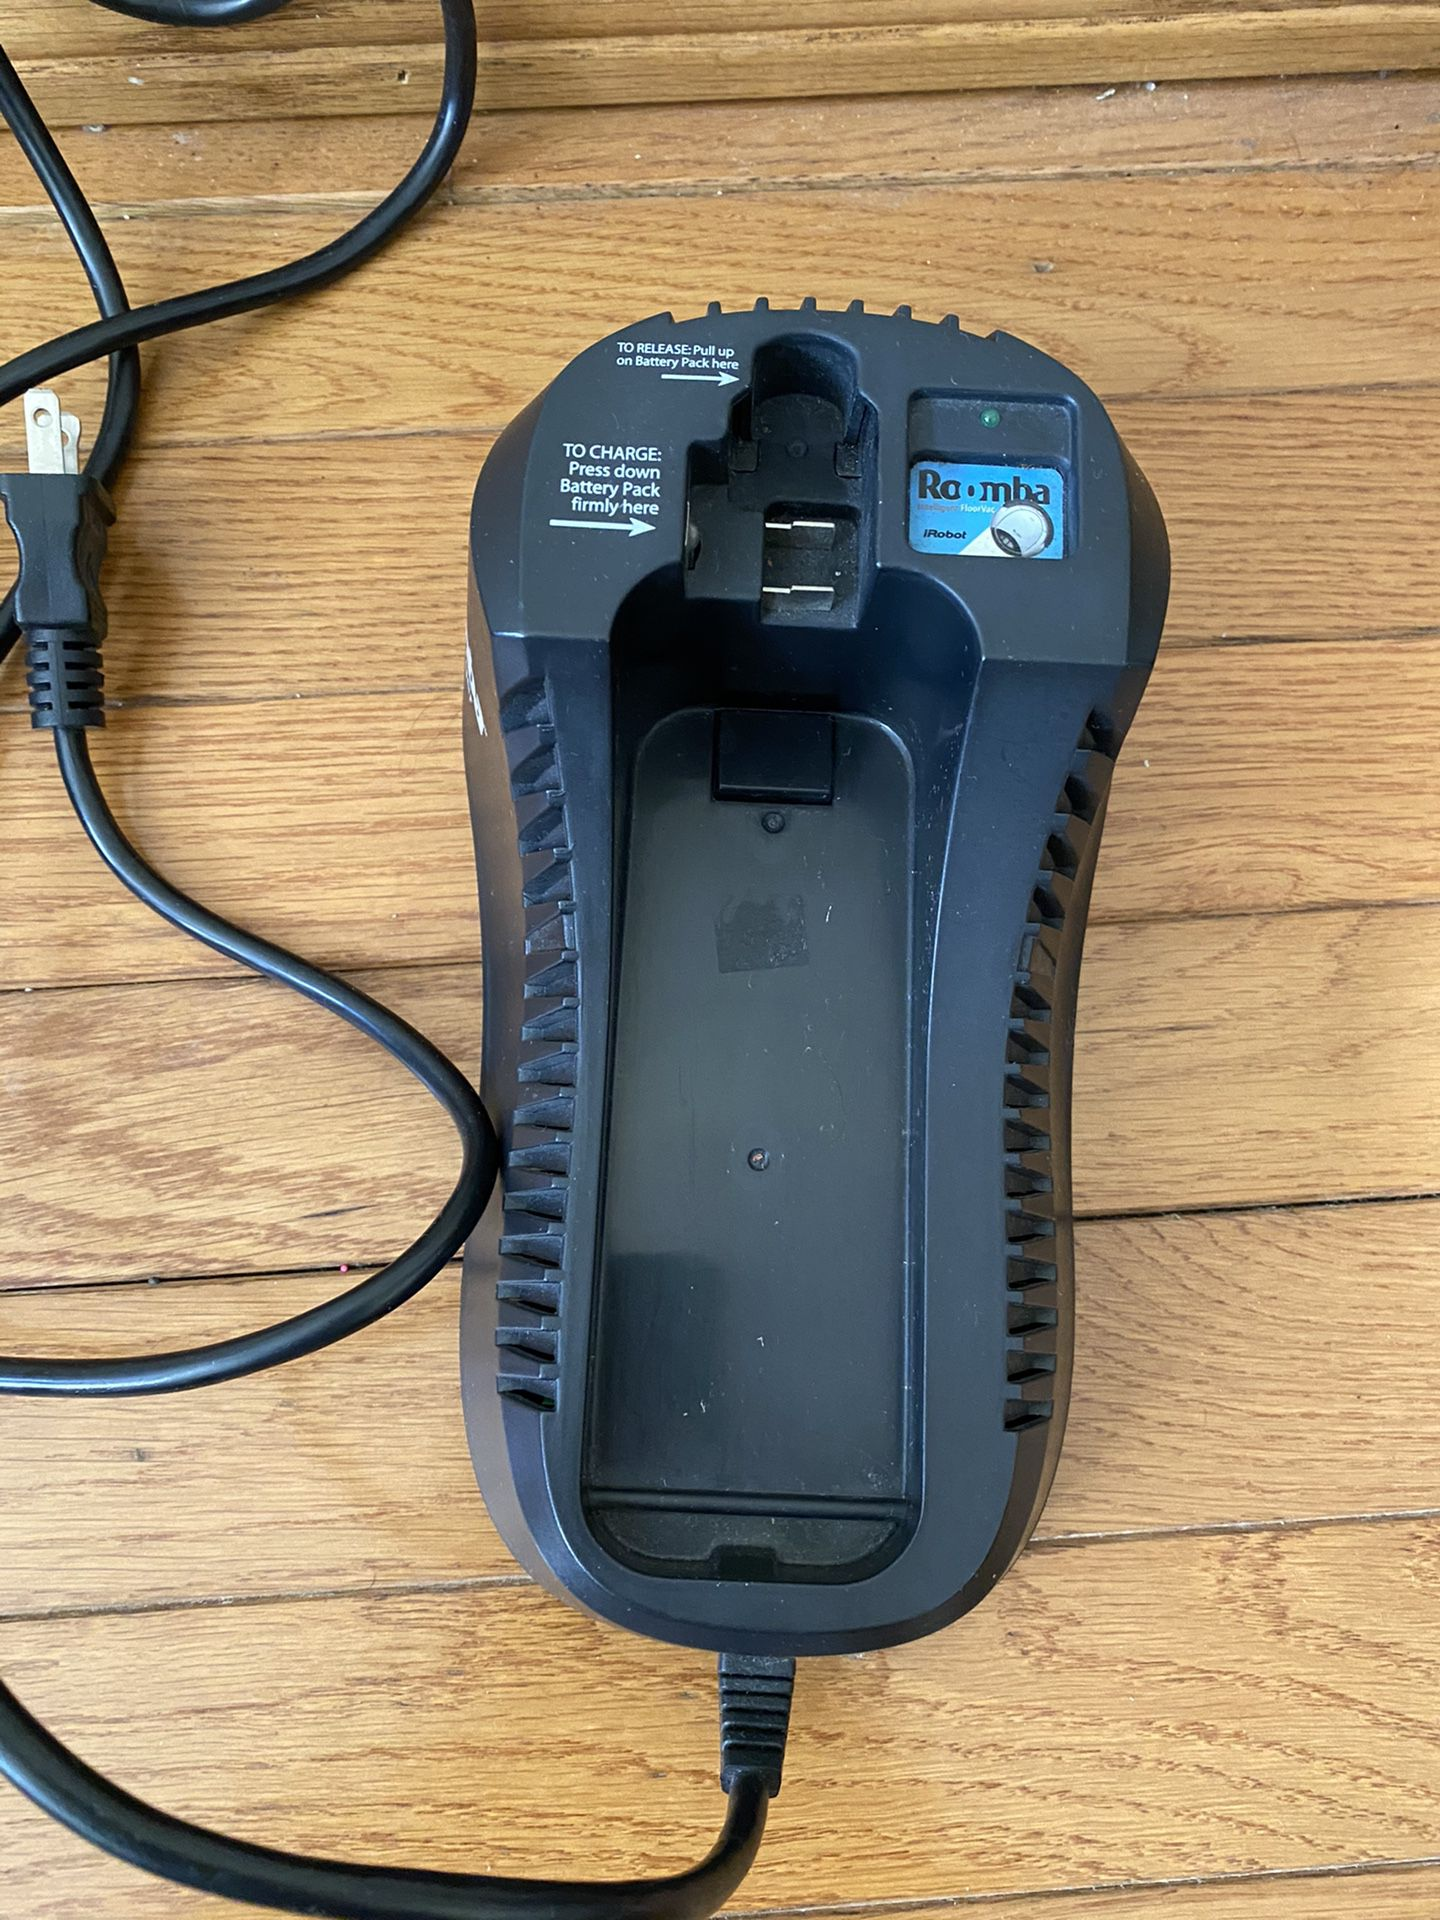 Roomba Rapid Charger